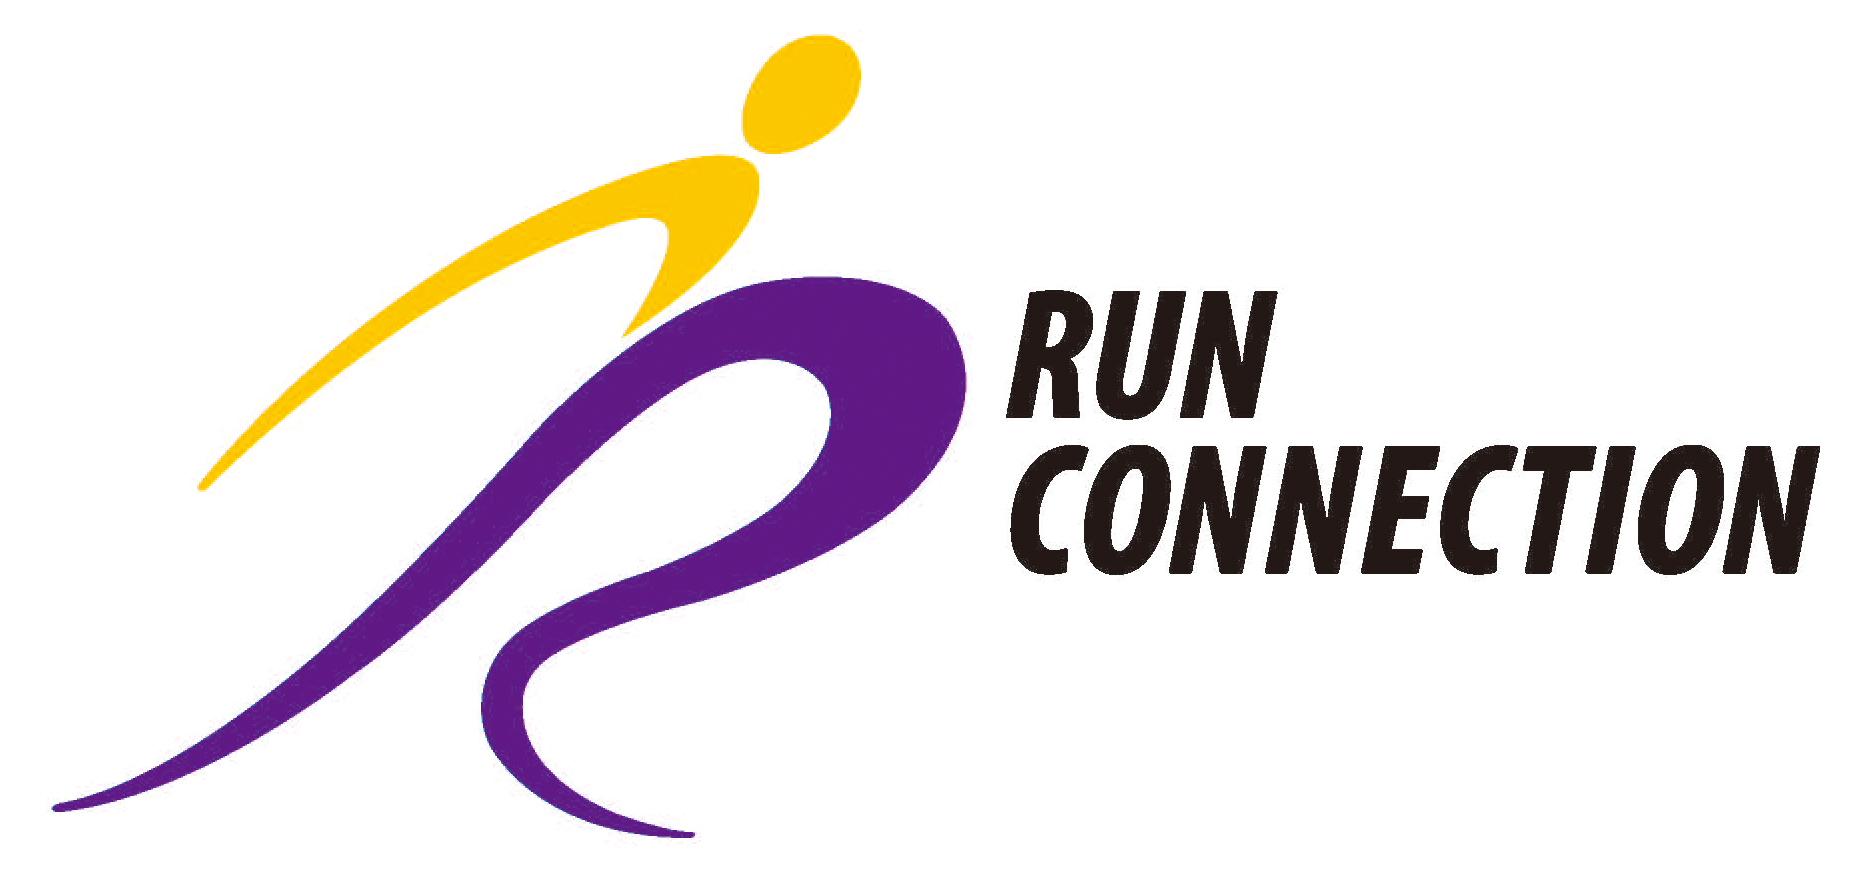 RUNCONNECTION